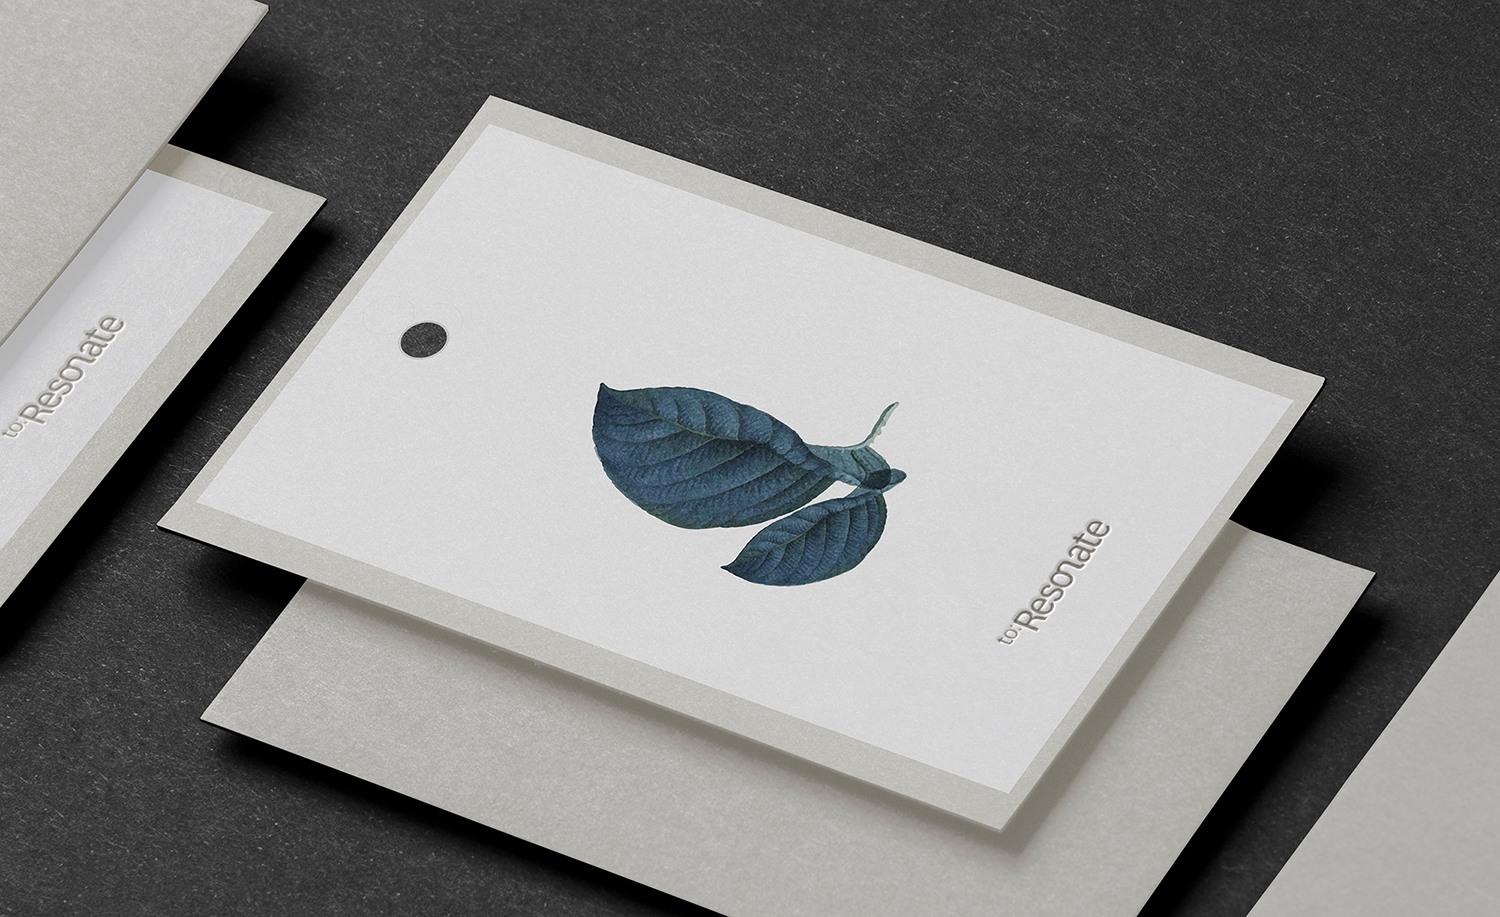 to:Resonate Branding - Vancouver Canada